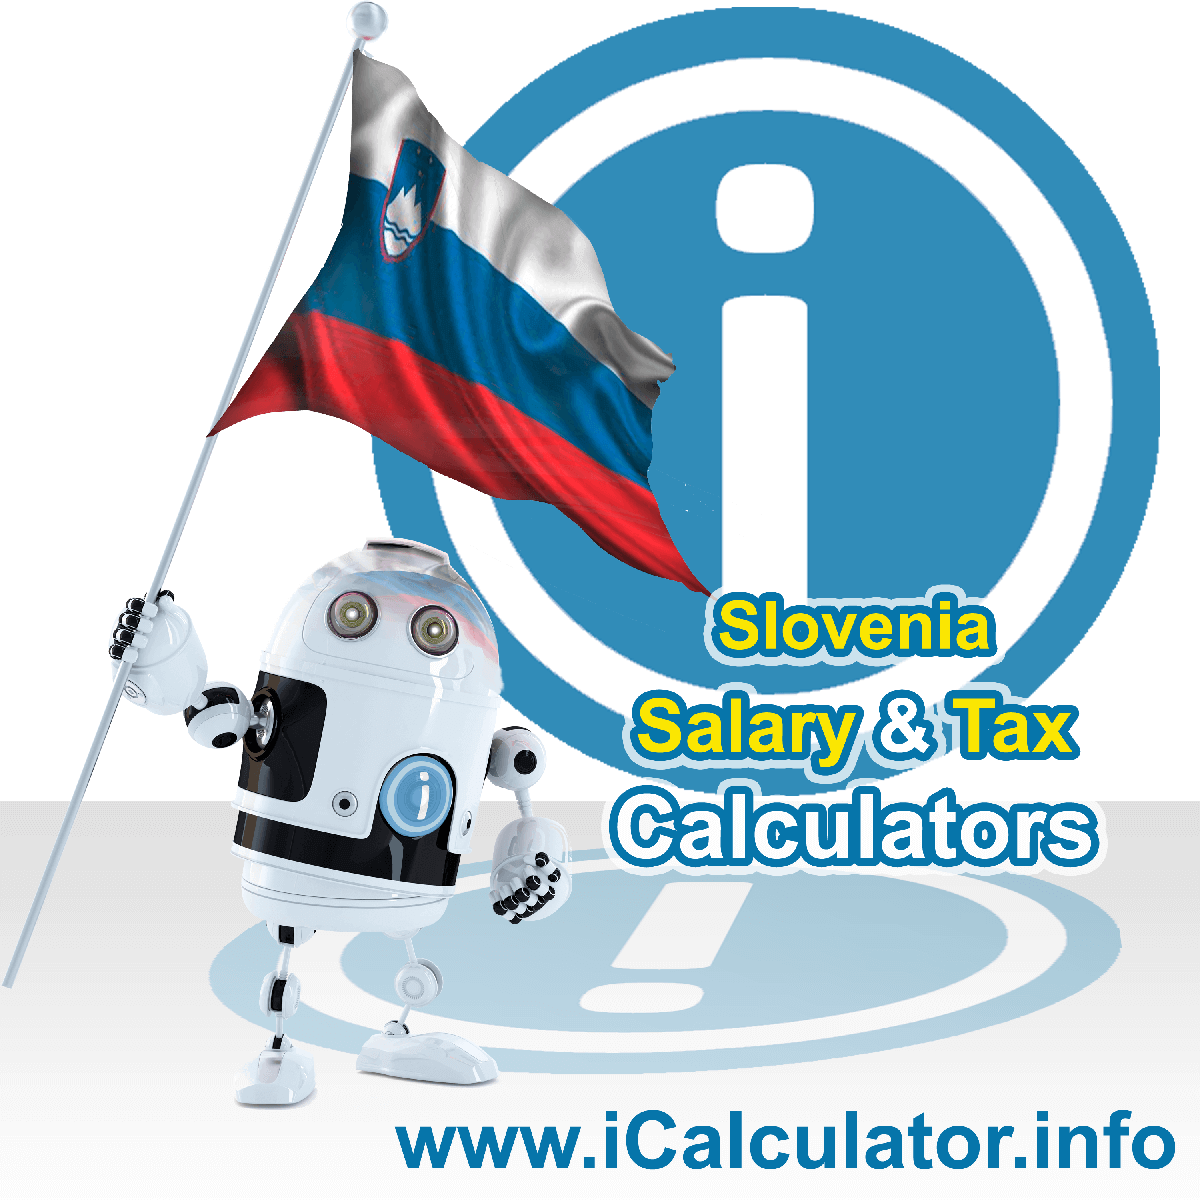 Slovenia Wage Calculator. This image shows the Slovenia flag and information relating to the tax formula for the Slovenia Tax Calculator